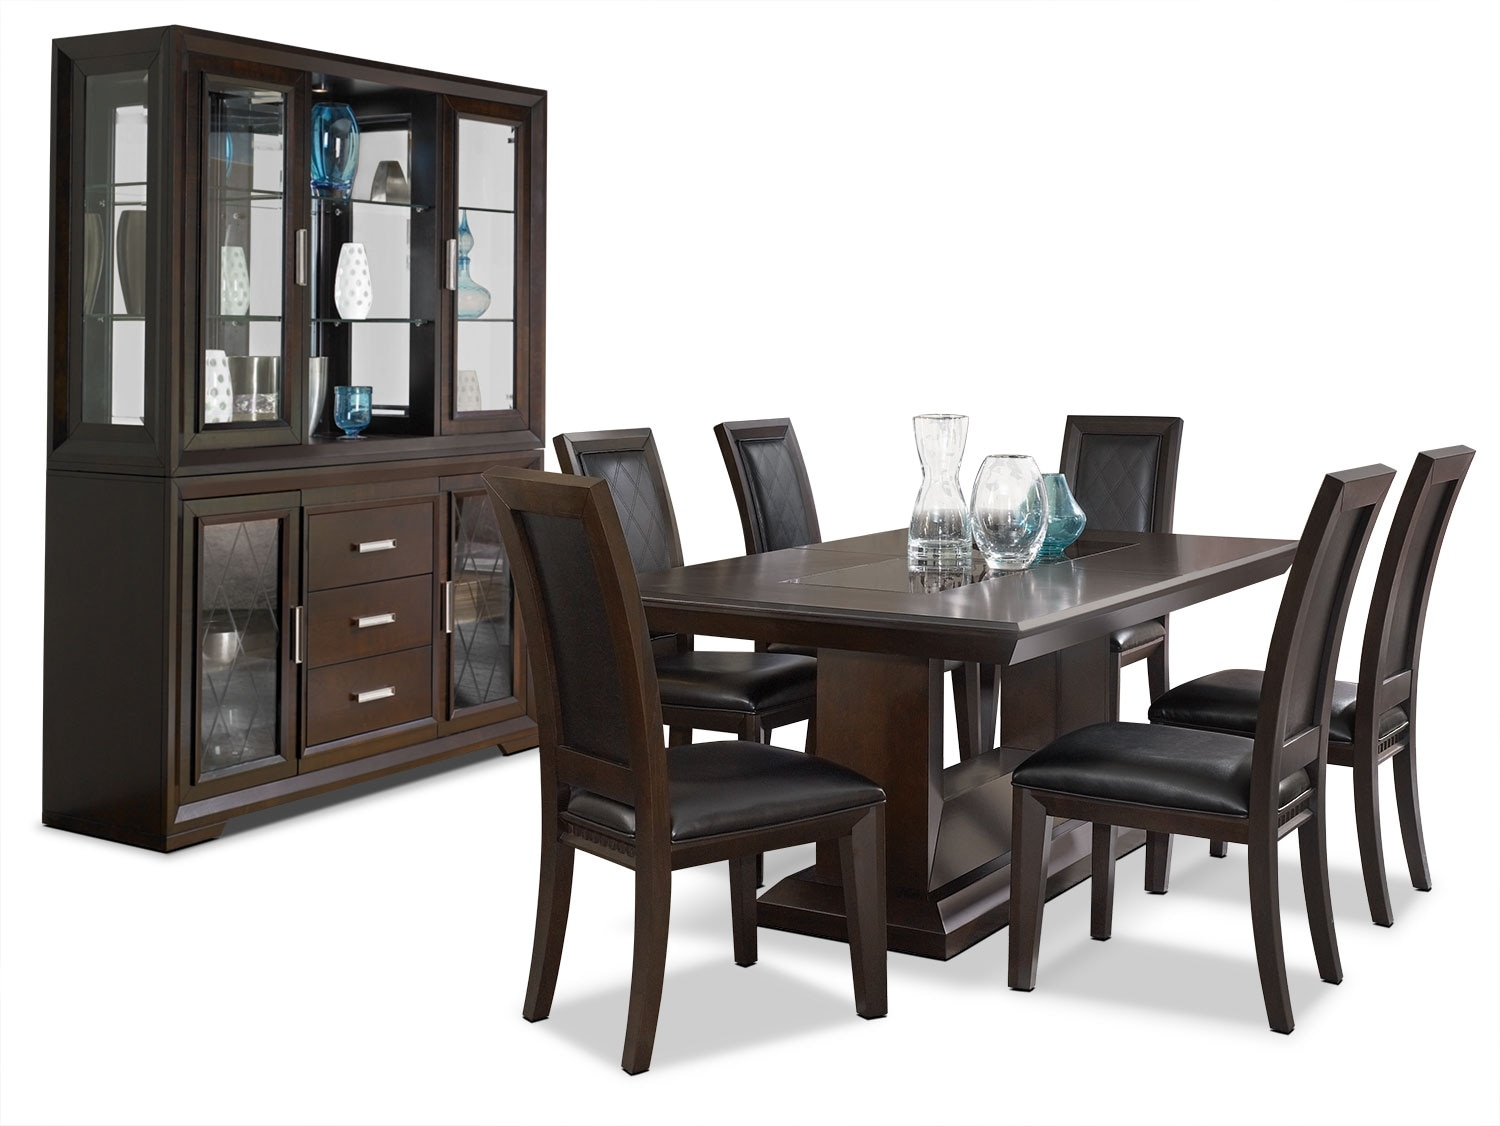 Dining Room Furniture - Brentwood 9 Piece Dining Package